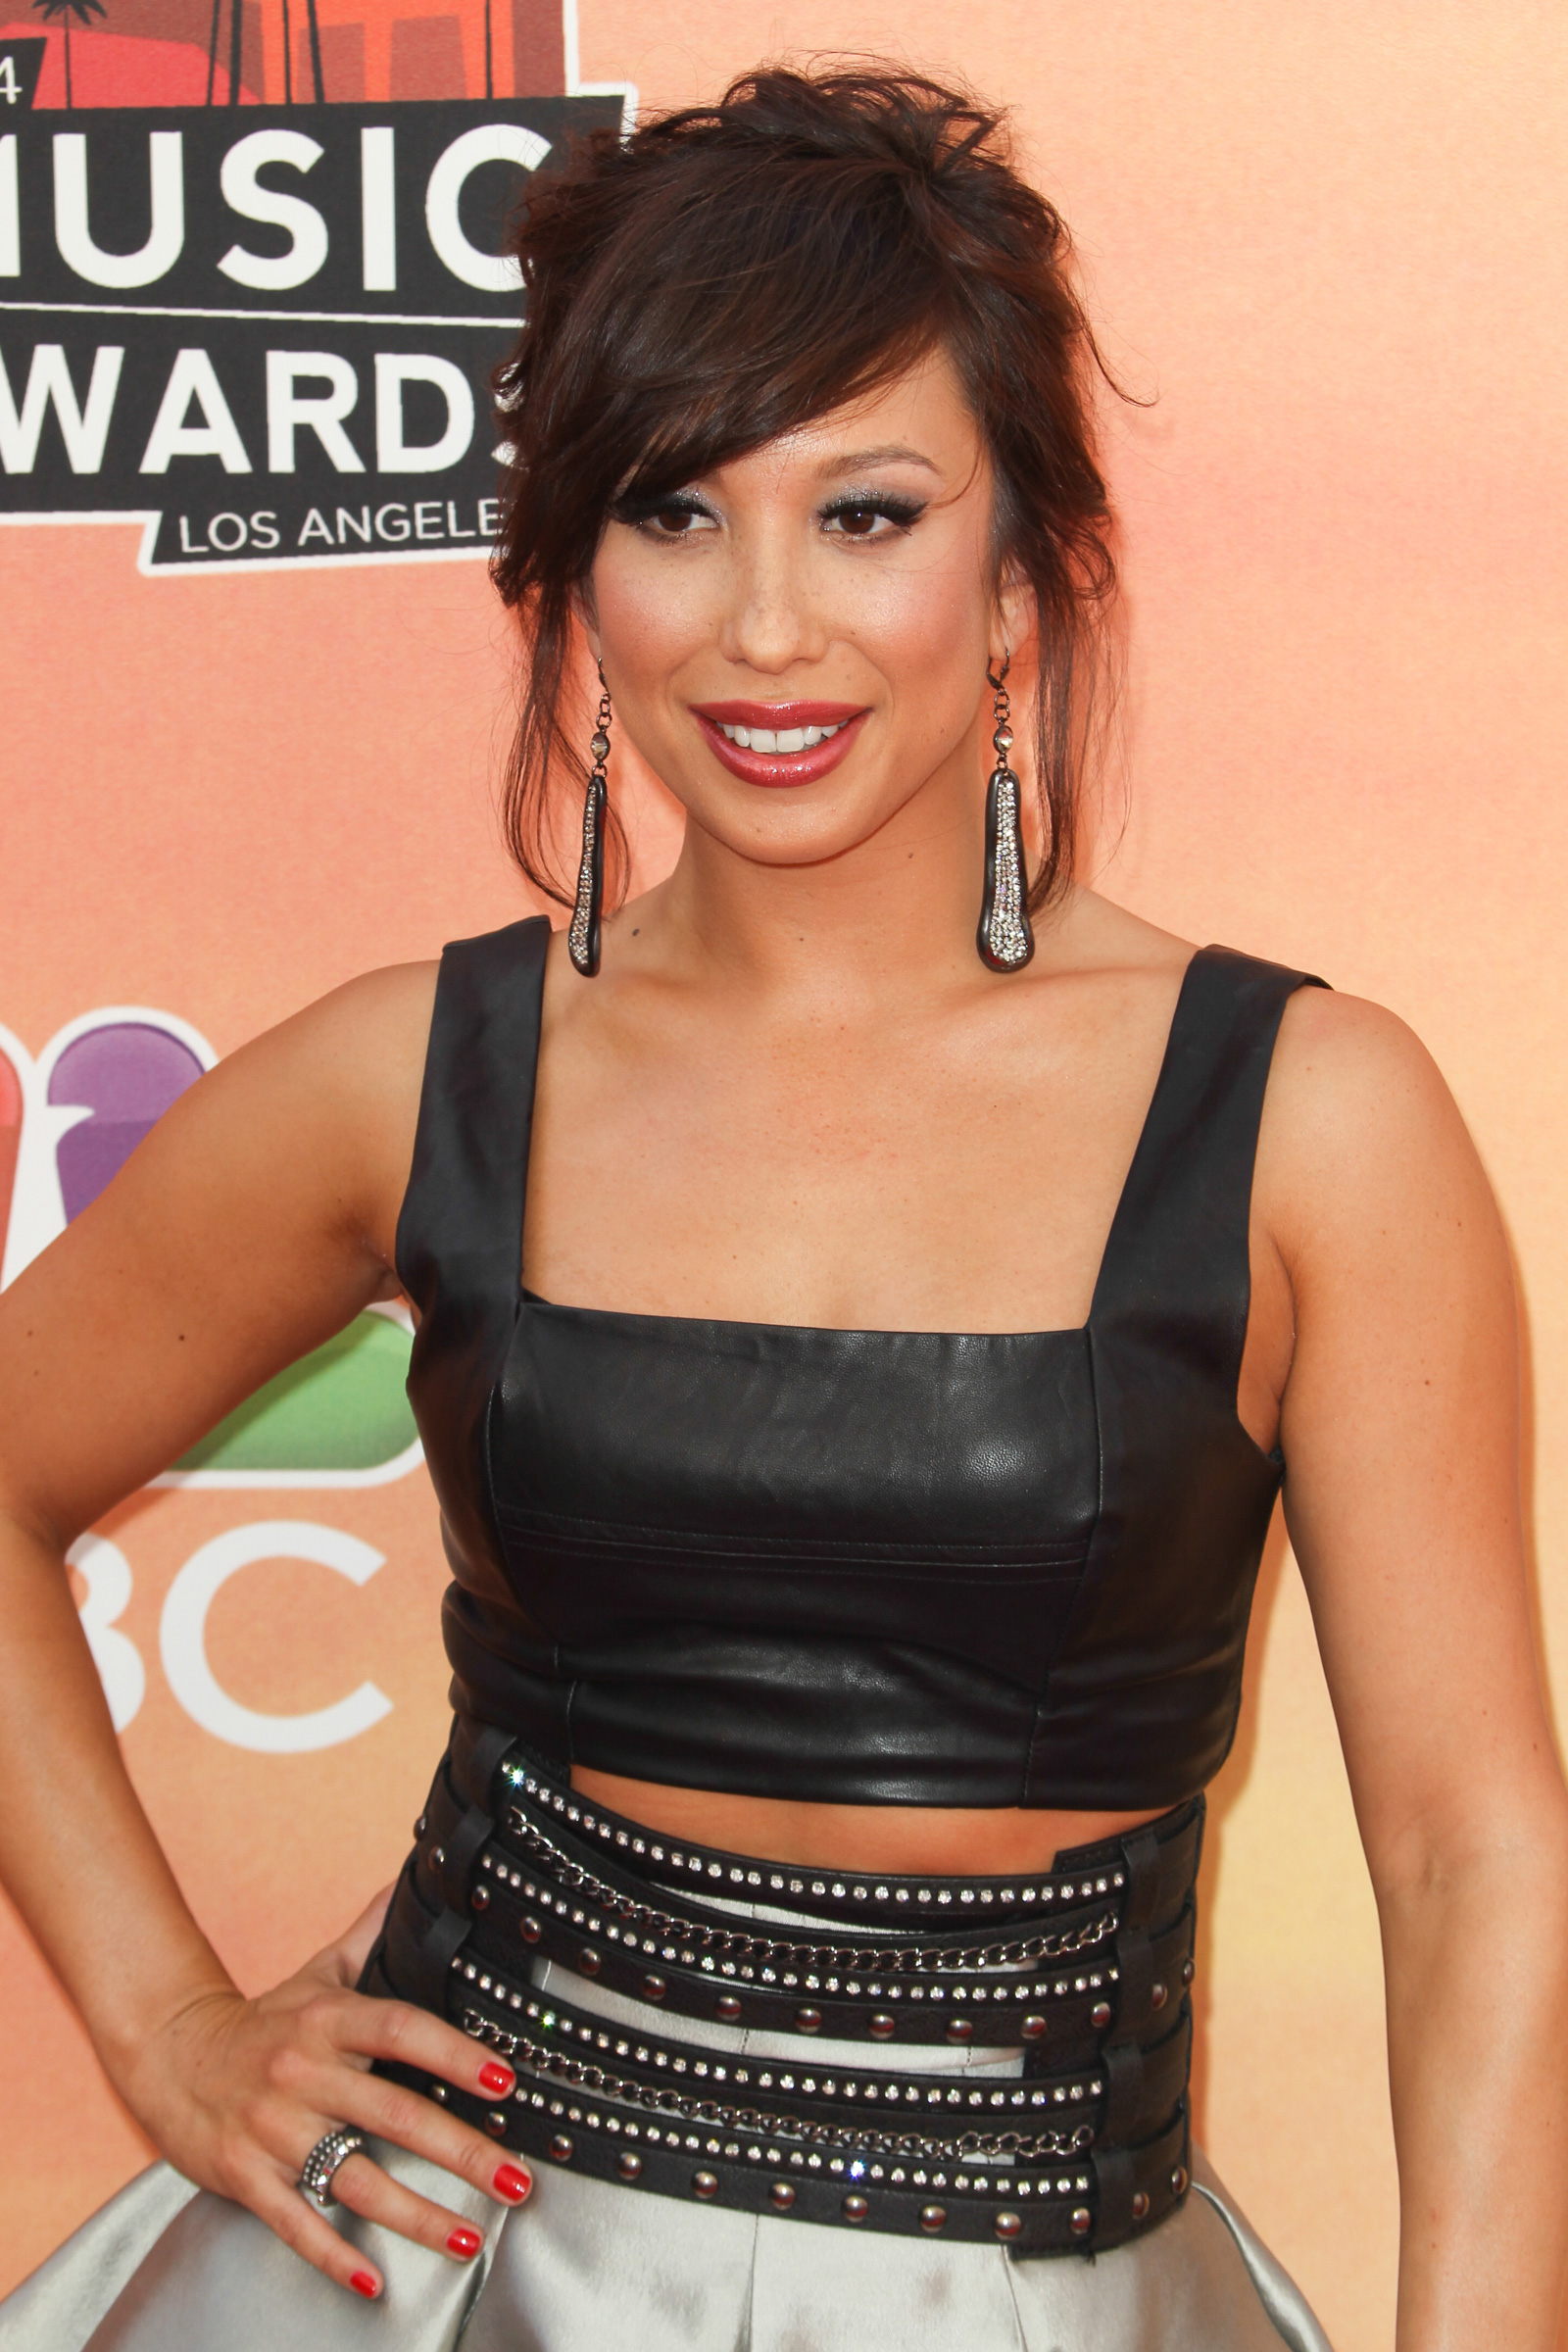 Cheryl Burke at the 2014 iHeartRadio Music Awards